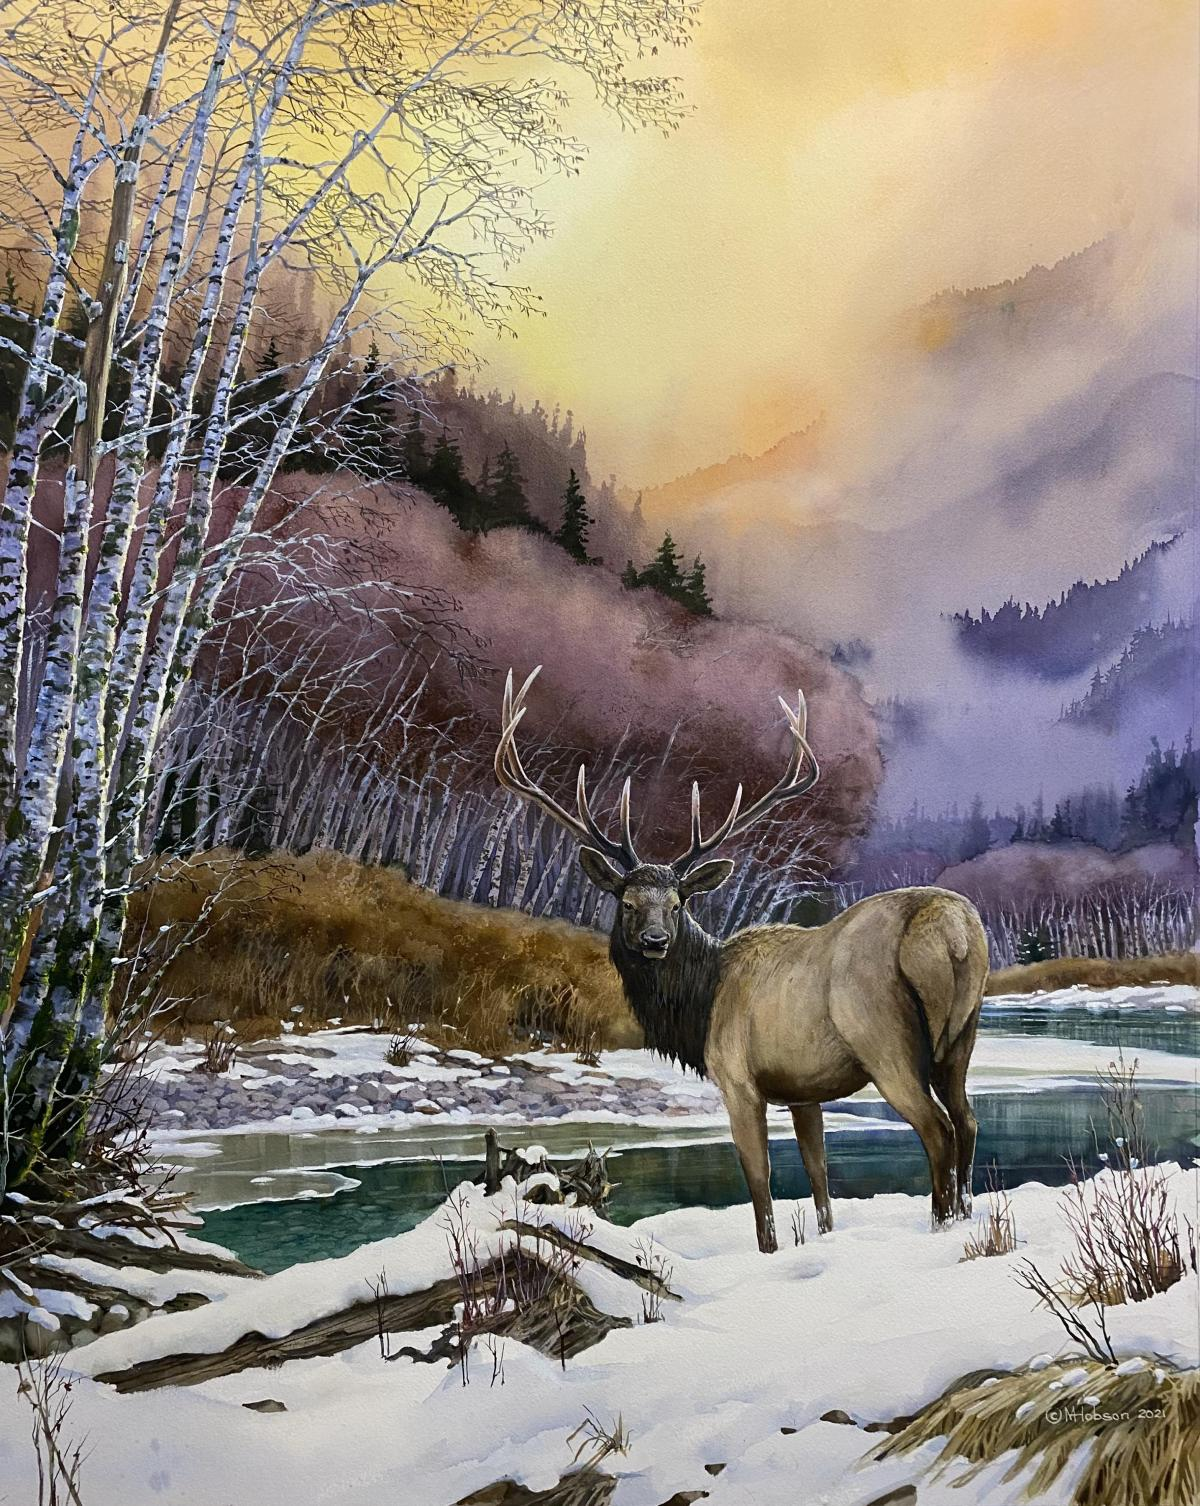 Roosevelt Elk: In His Prime   Wallhanging by Mark Hobson   Artists for Conservation 2021